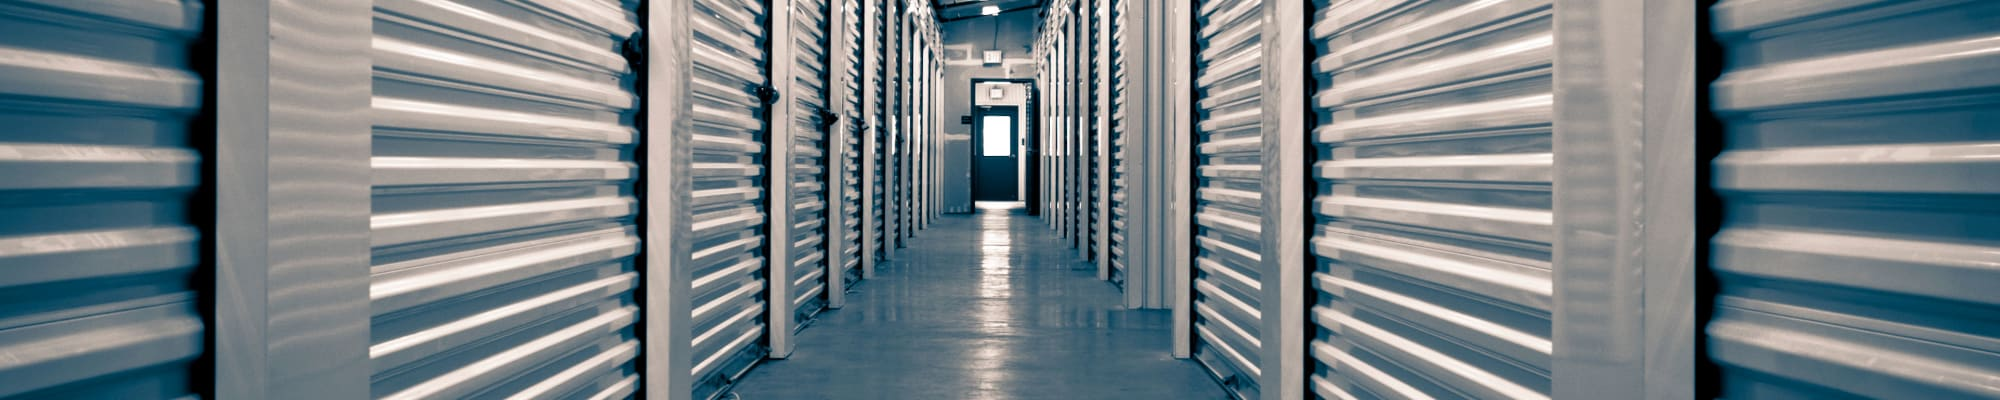 Auto and boat storage at Store It All Self Storage - Townlake in Laredo, Texas